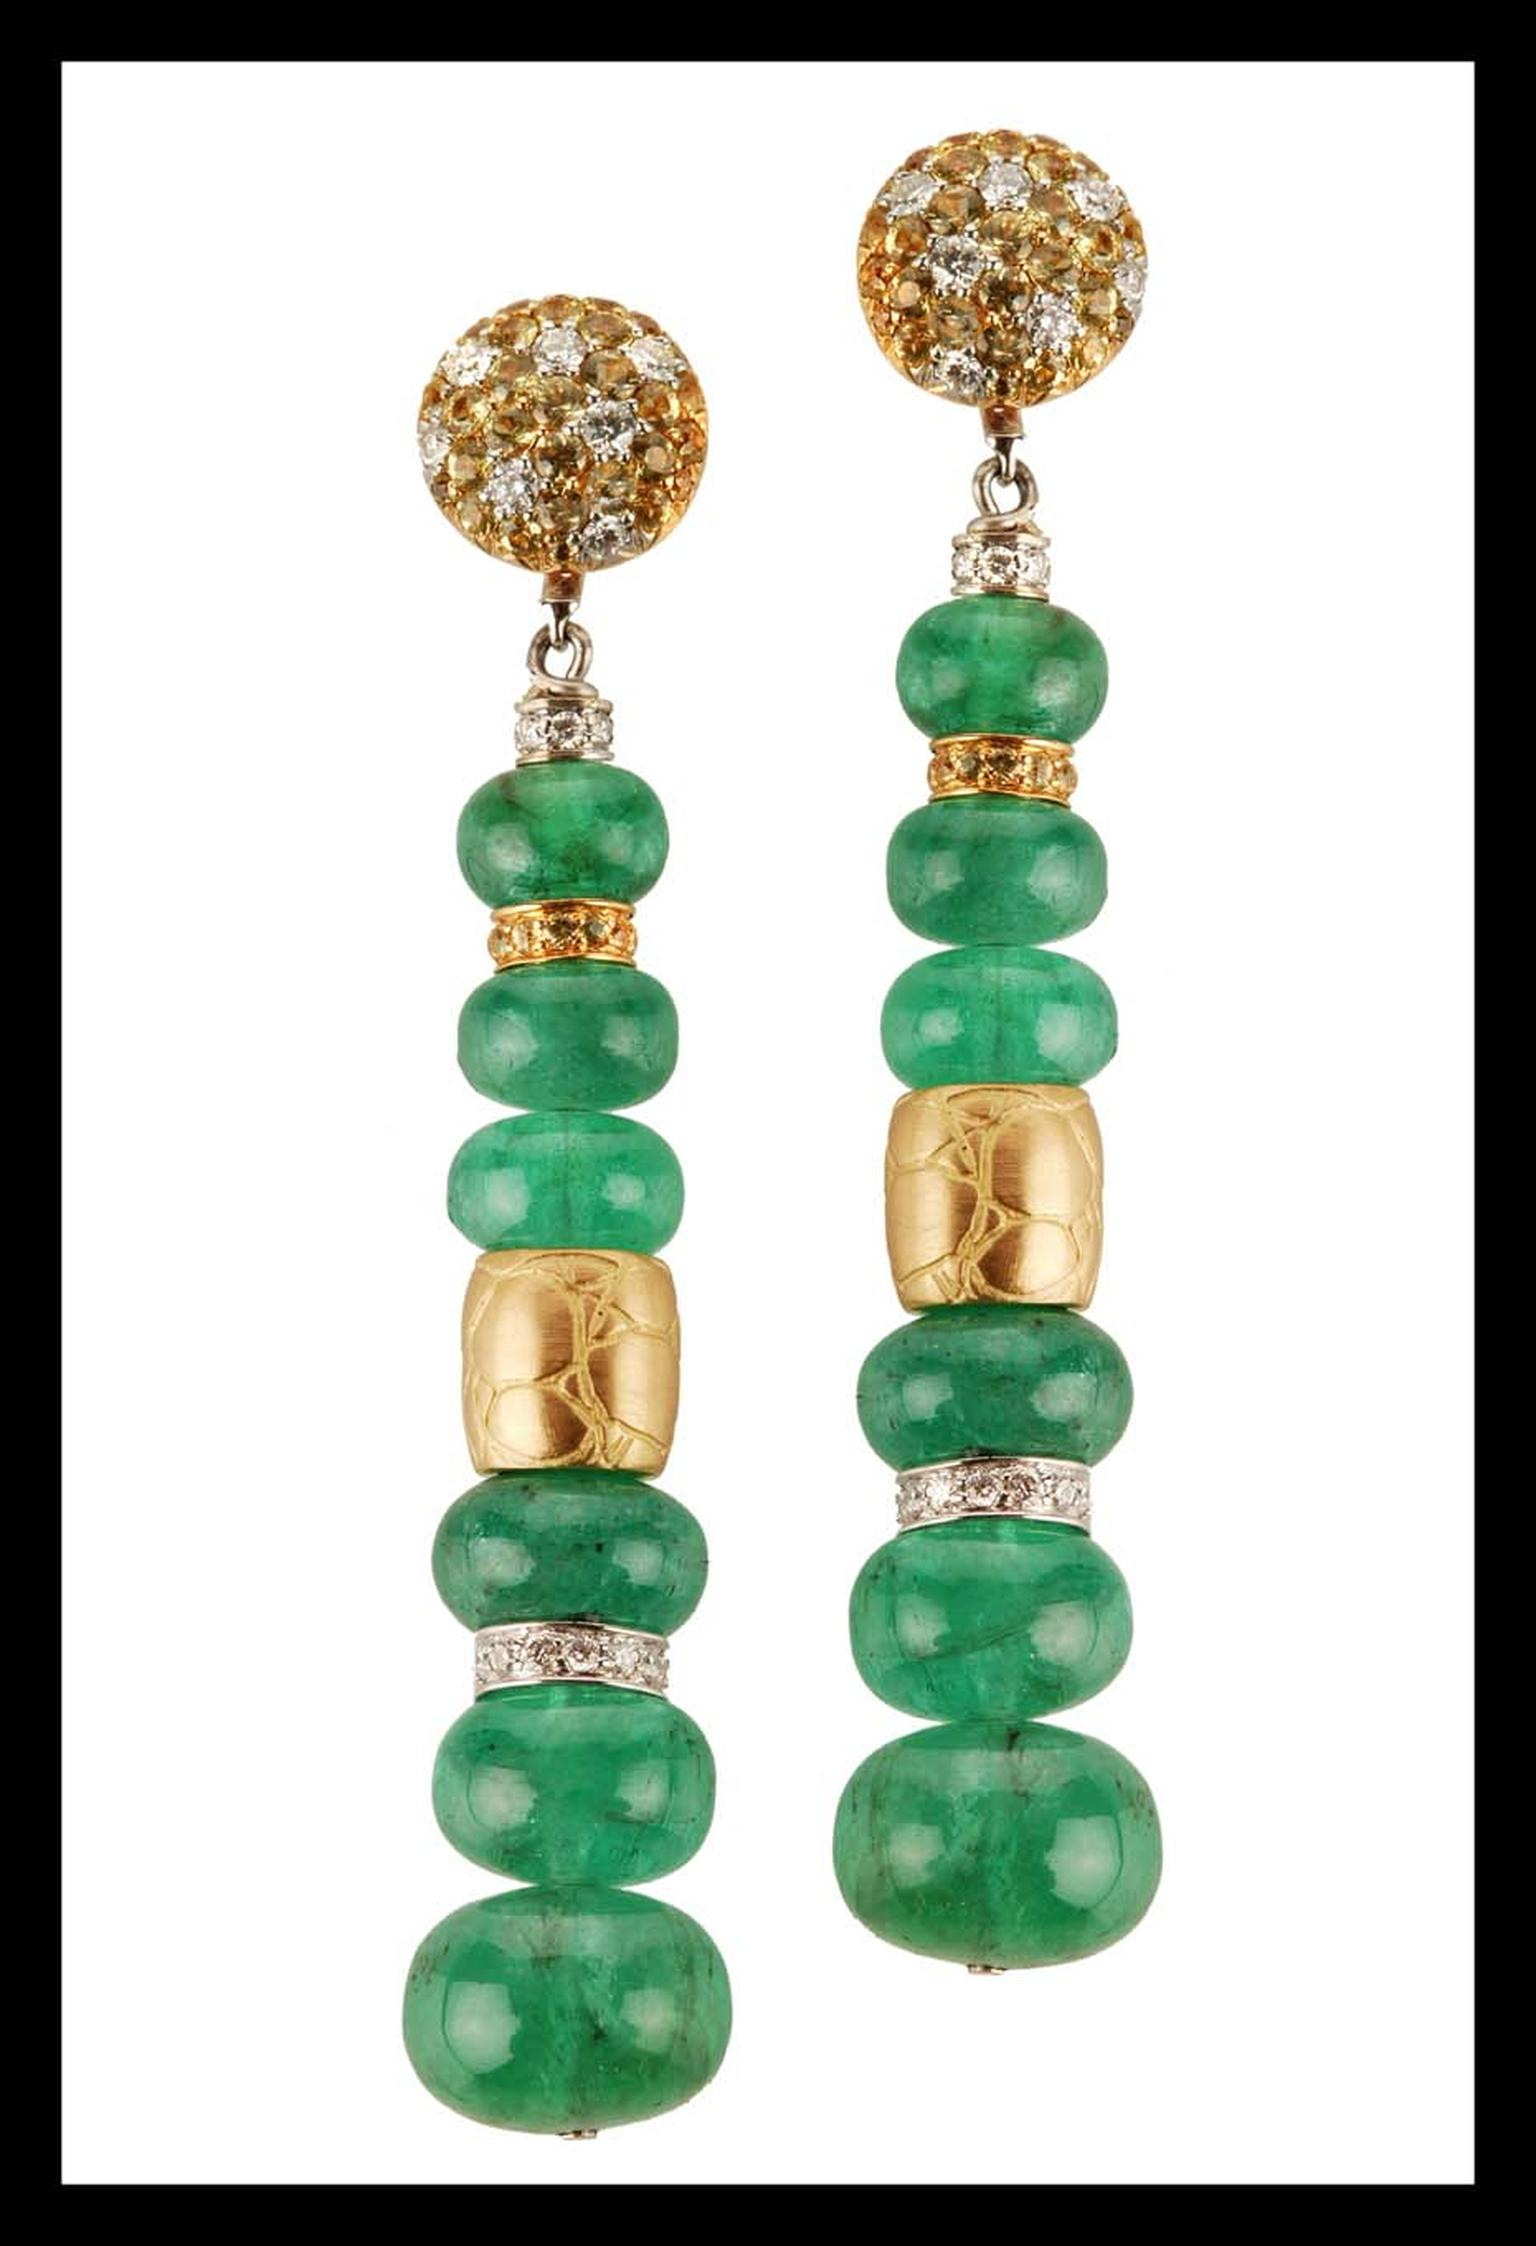 Elena C one-of-a-kind long emerald earrings with mini gold coconut textured barrels, yellow sapphires and diamonds (9,900€).